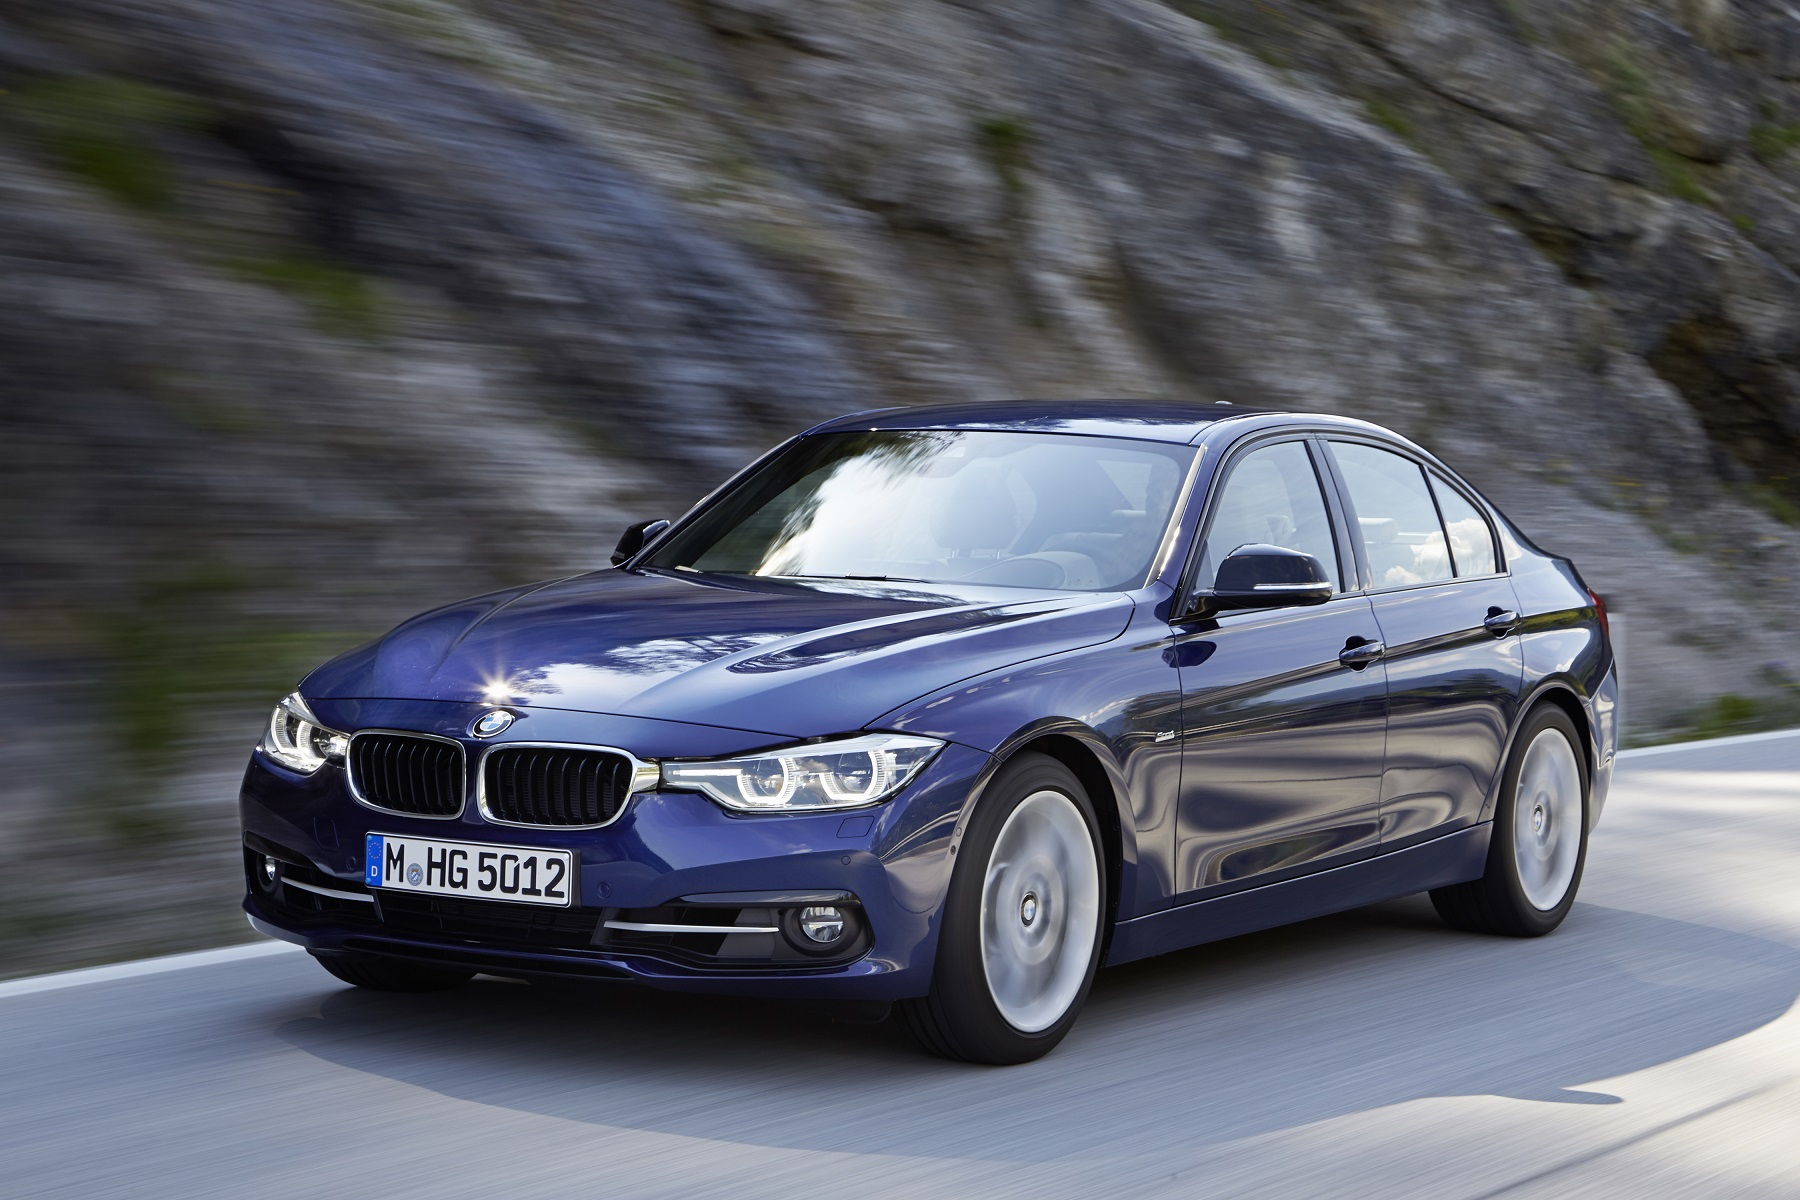 Bmw 3 Series Lci Malaysia Launched 328i Double Din 340i Colour Mediterranean Blue Leather Dakota Oyster Sport Line